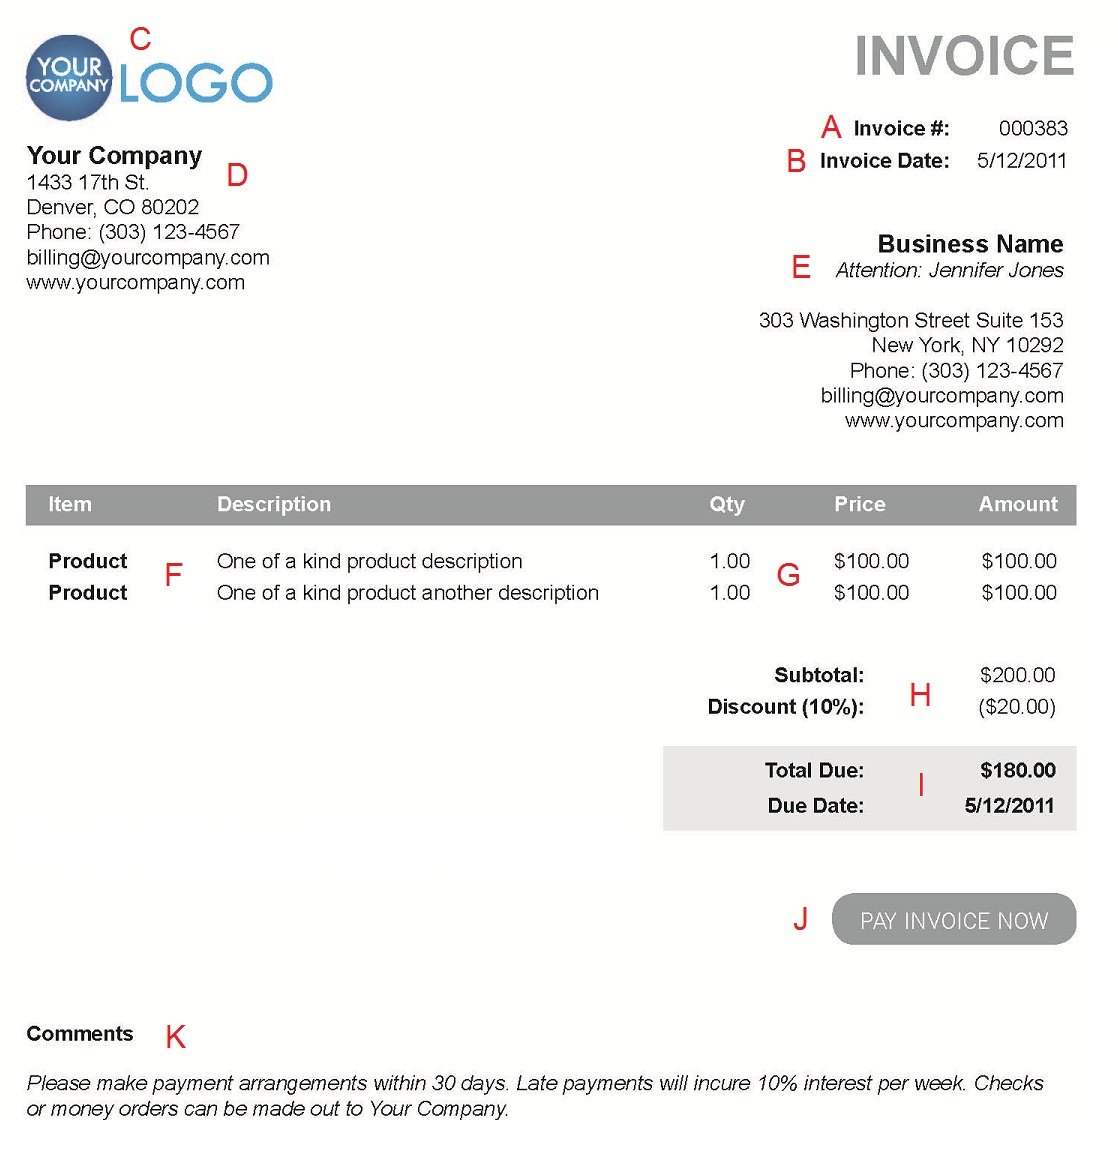 Aaaaeroincus  Surprising The  Different Sections Of An Electronic Payment Invoice With Heavenly A  With Captivating Miami Dade County Business Tax Receipt Also Print Fake Receipts In Addition Jackson County Missouri Personal Property Tax Receipt And Where Is The Tracking Number On My Usps Receipt As Well As Adams Money Rent Receipt Book Additionally Mobile Receipt Scanner From Paysimplecom With Aaaaeroincus  Heavenly The  Different Sections Of An Electronic Payment Invoice With Captivating A  And Surprising Miami Dade County Business Tax Receipt Also Print Fake Receipts In Addition Jackson County Missouri Personal Property Tax Receipt From Paysimplecom